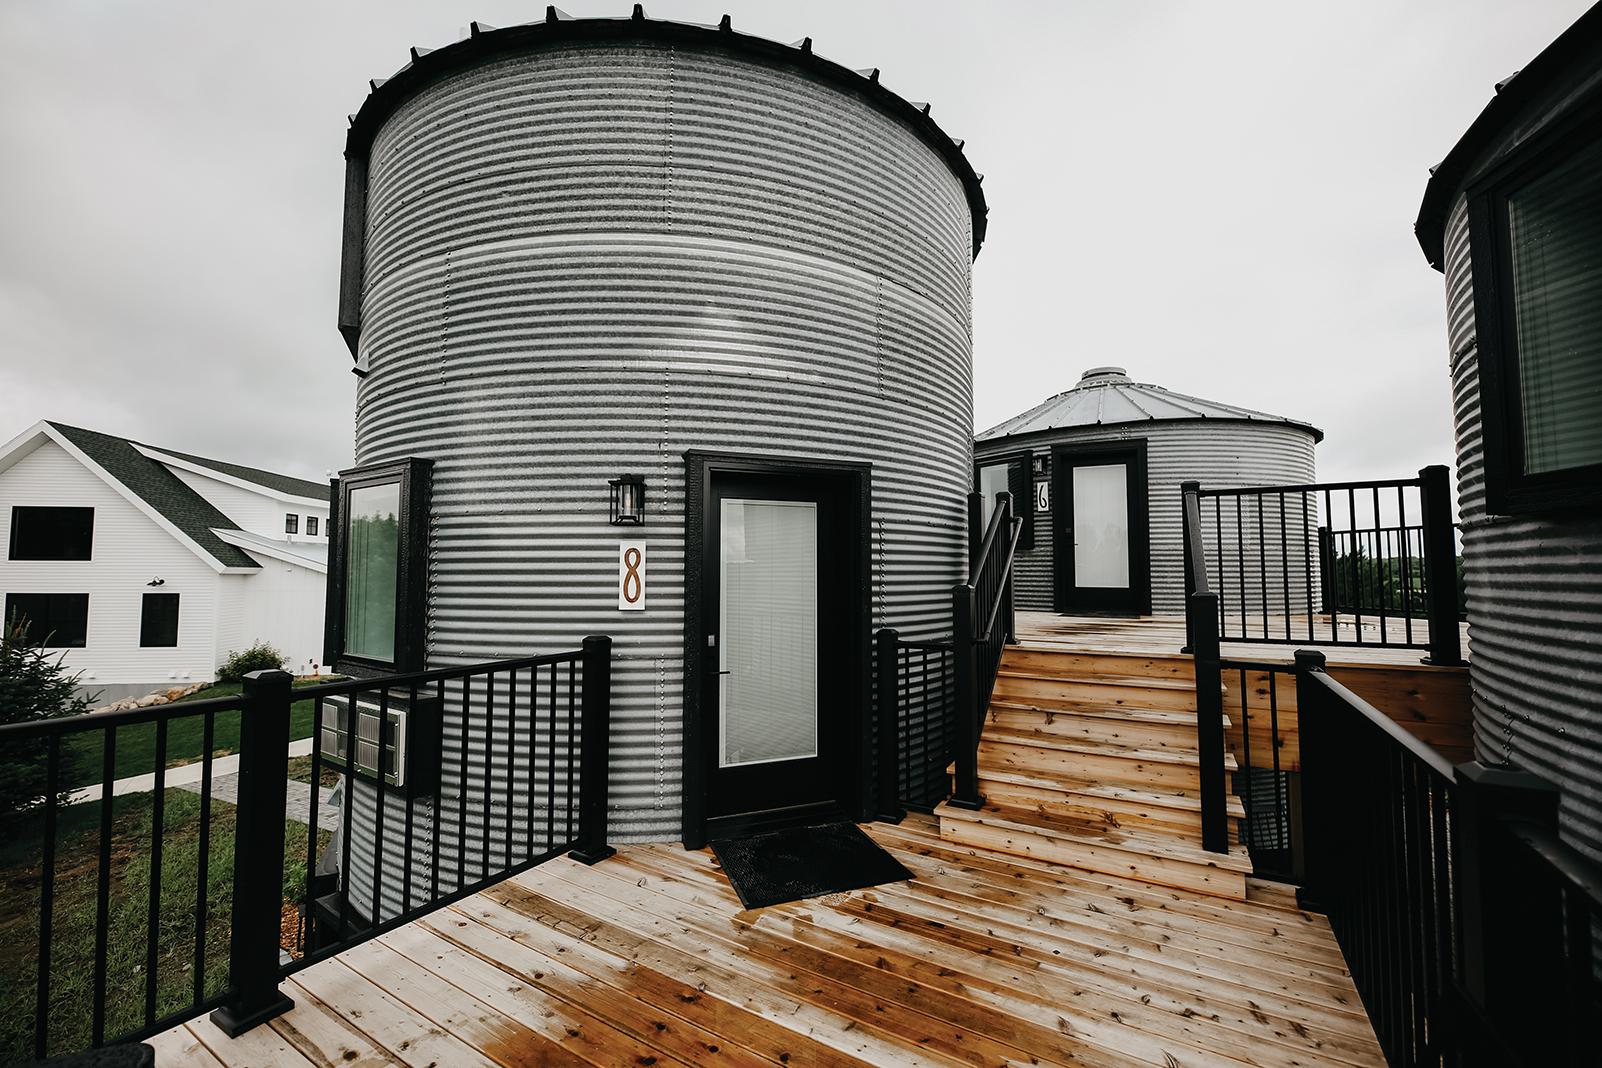 One of the converted grain bins at Gathered Oaks